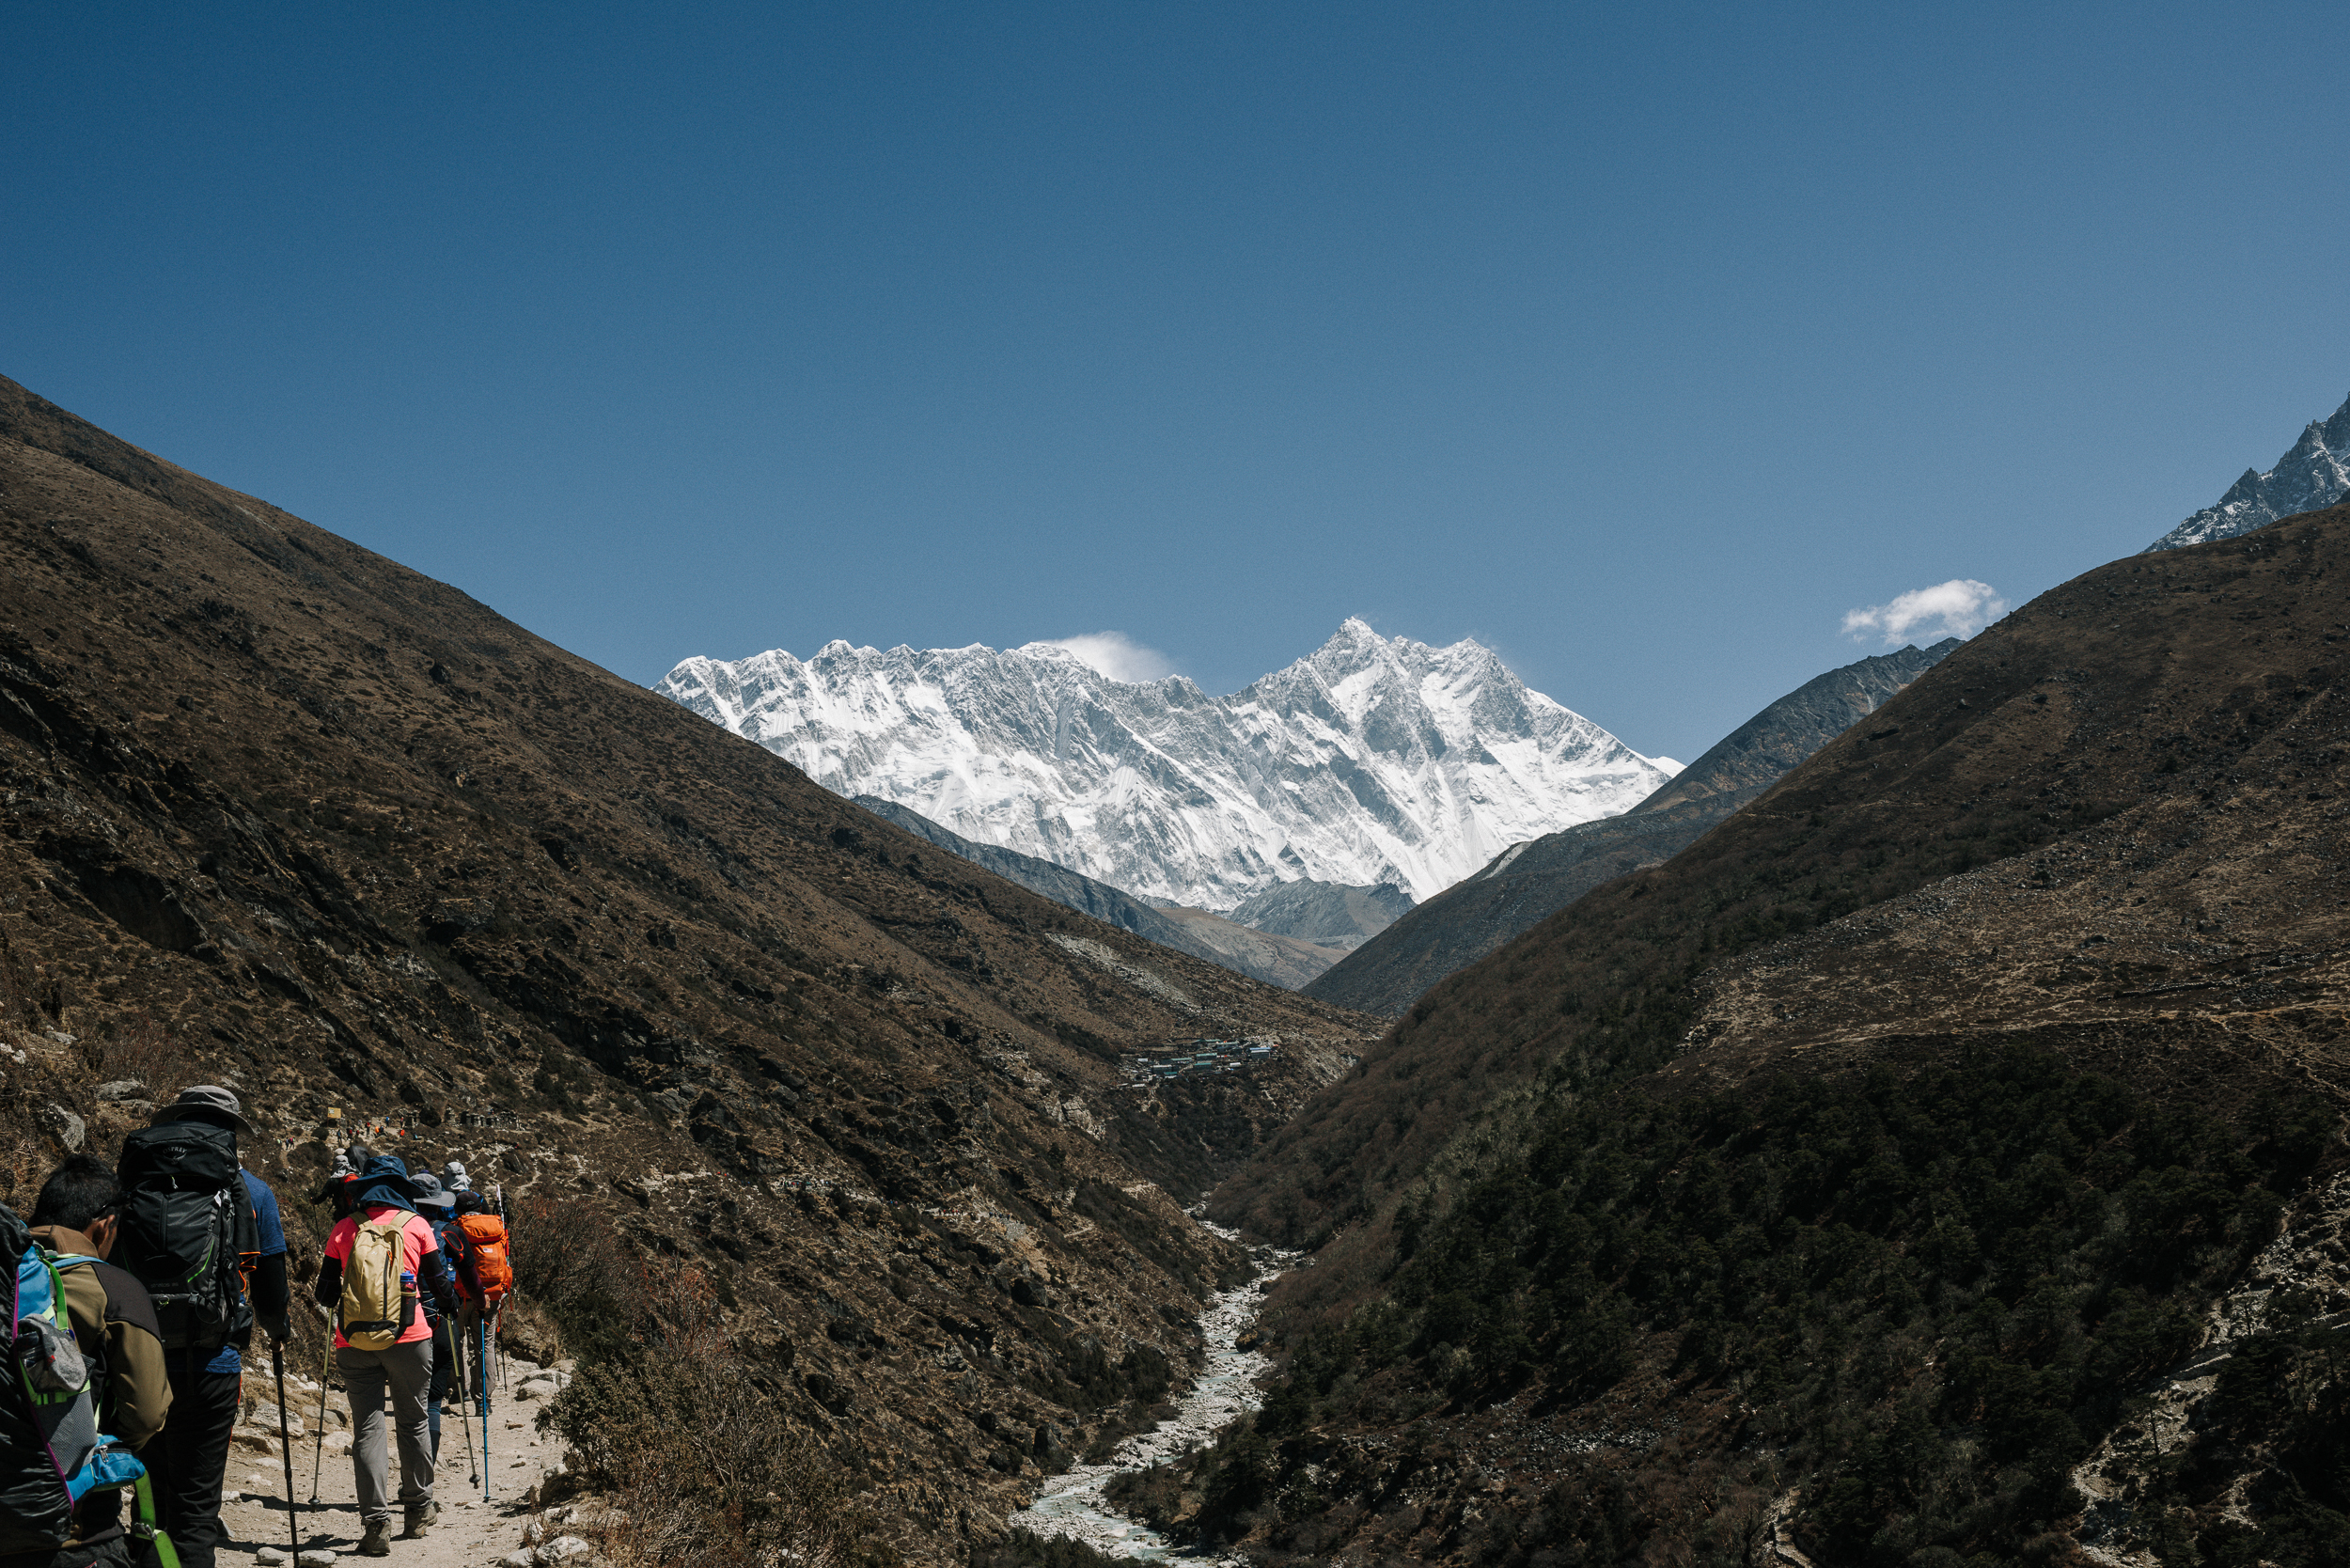 Nepal_EverestBaseCamp_2019_TaraShupe_Photography_DSC_3892.jpg